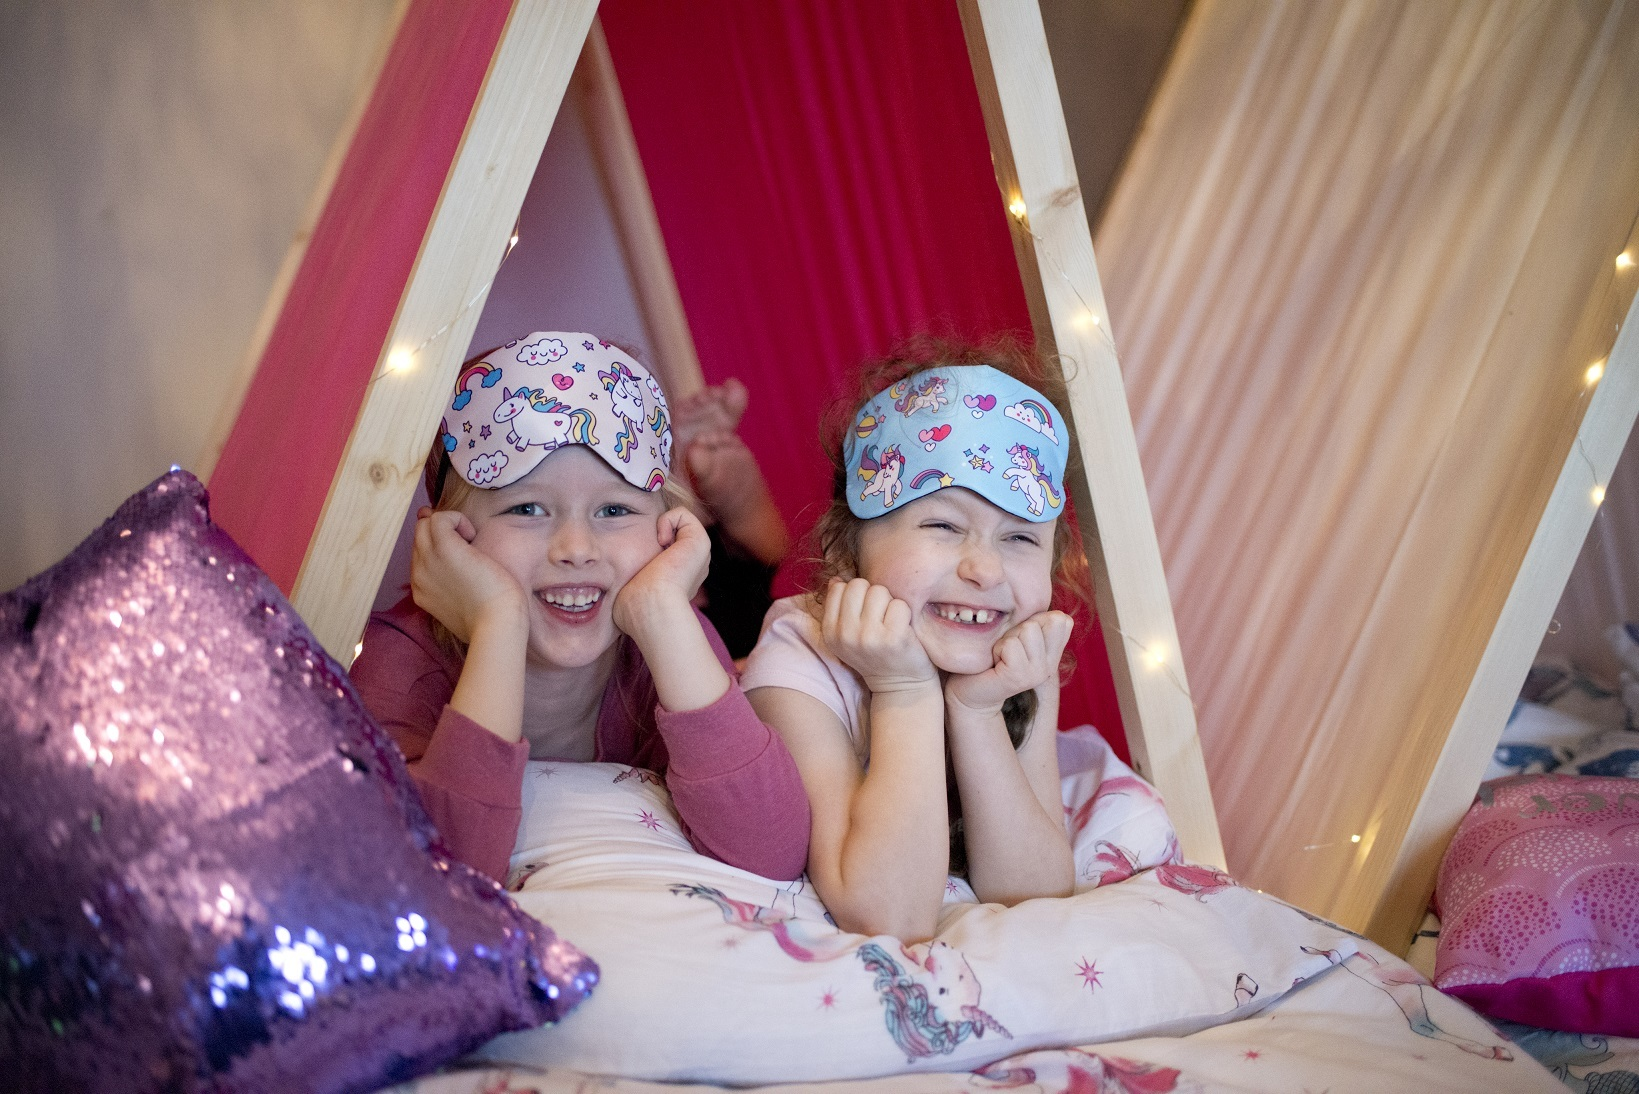 Daisy Barker (right) and Millie Saul (left) enjoy Hardy Soft Play's Once Upon a Time Sleepovers.